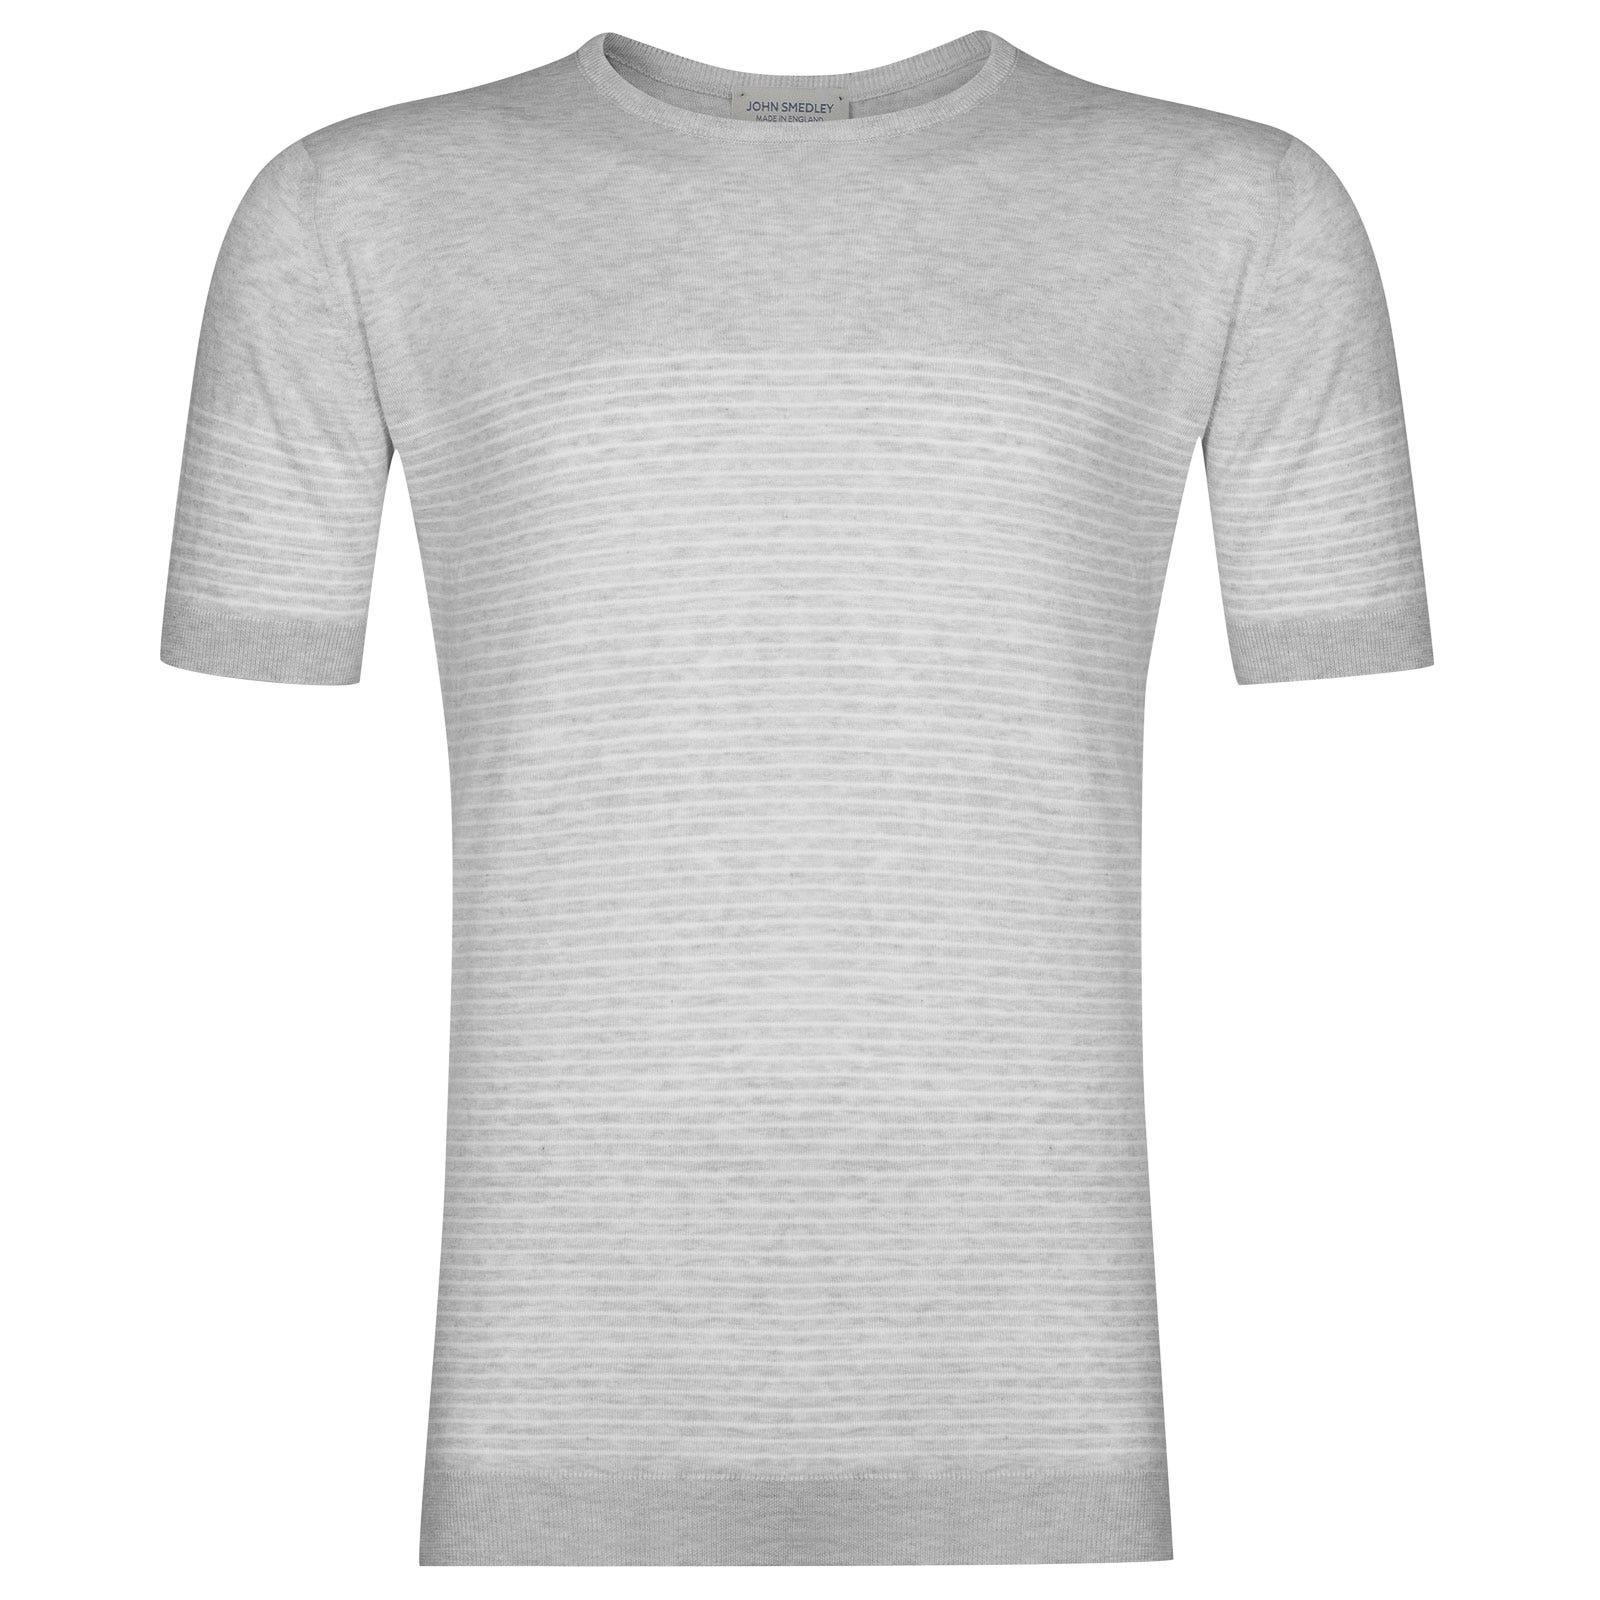 John Smedley Zester Tshirt in Feather Grey -M